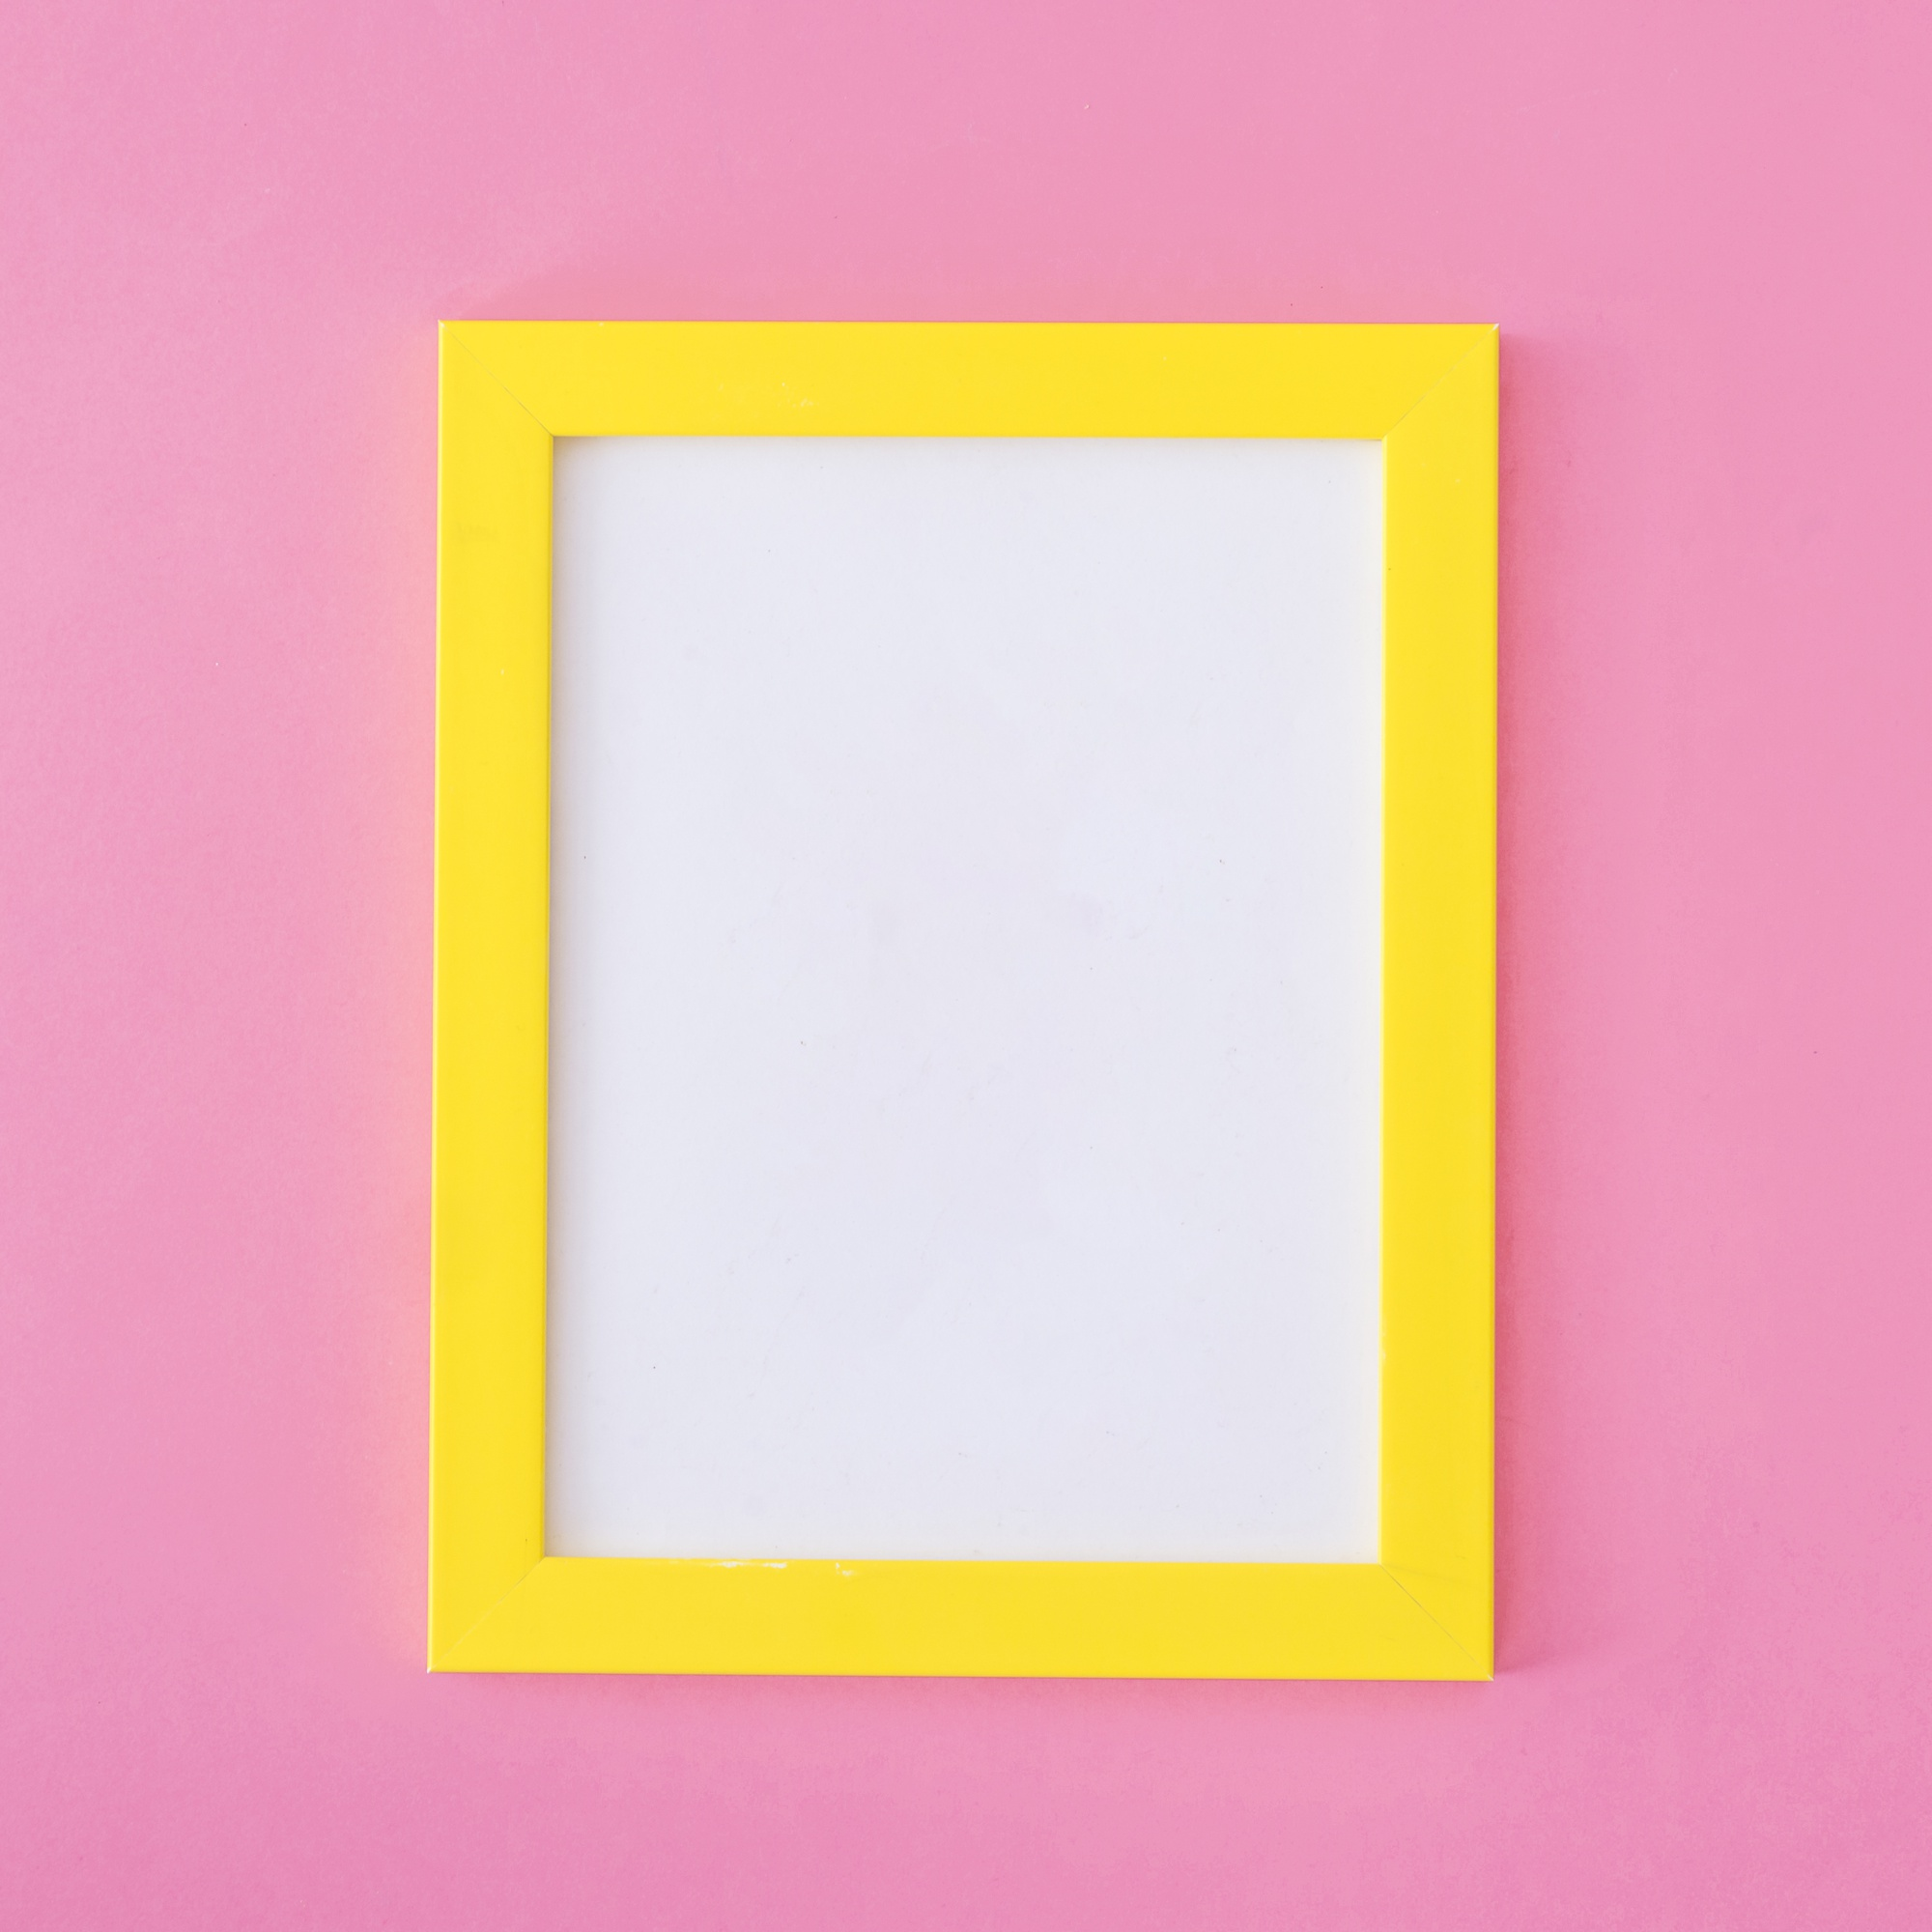 Yellow frame on pink